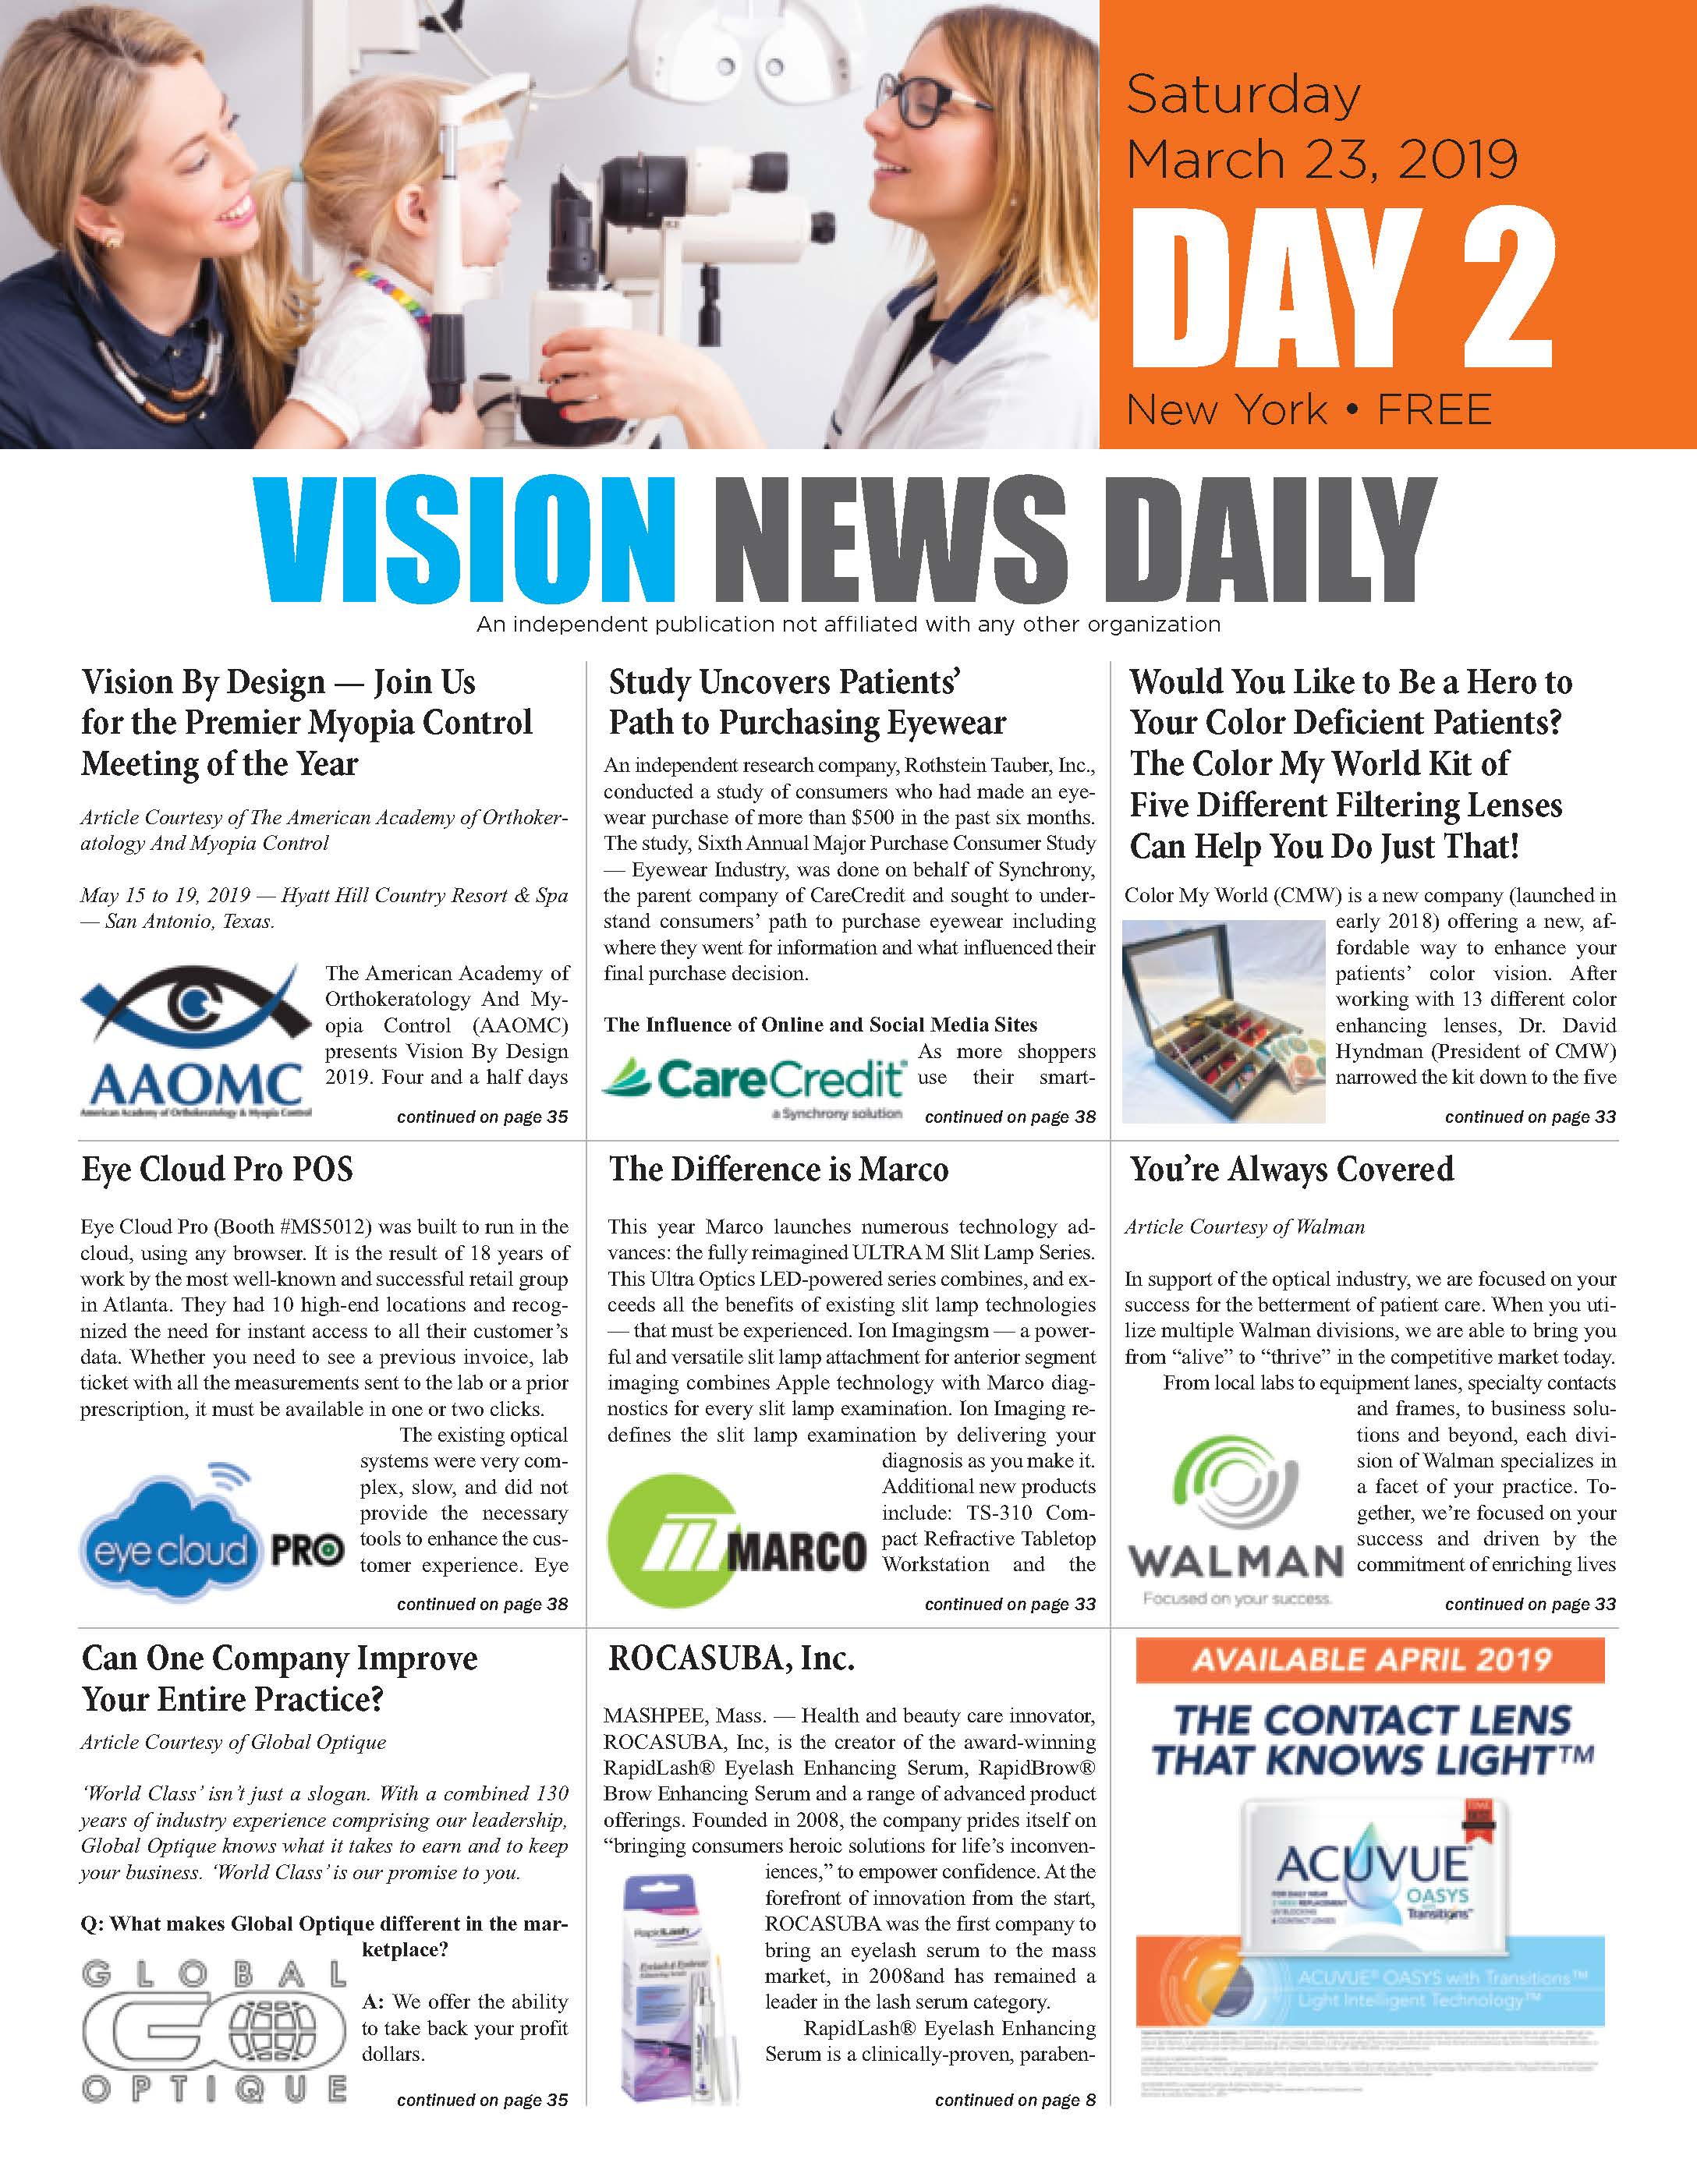 Vision News Daily